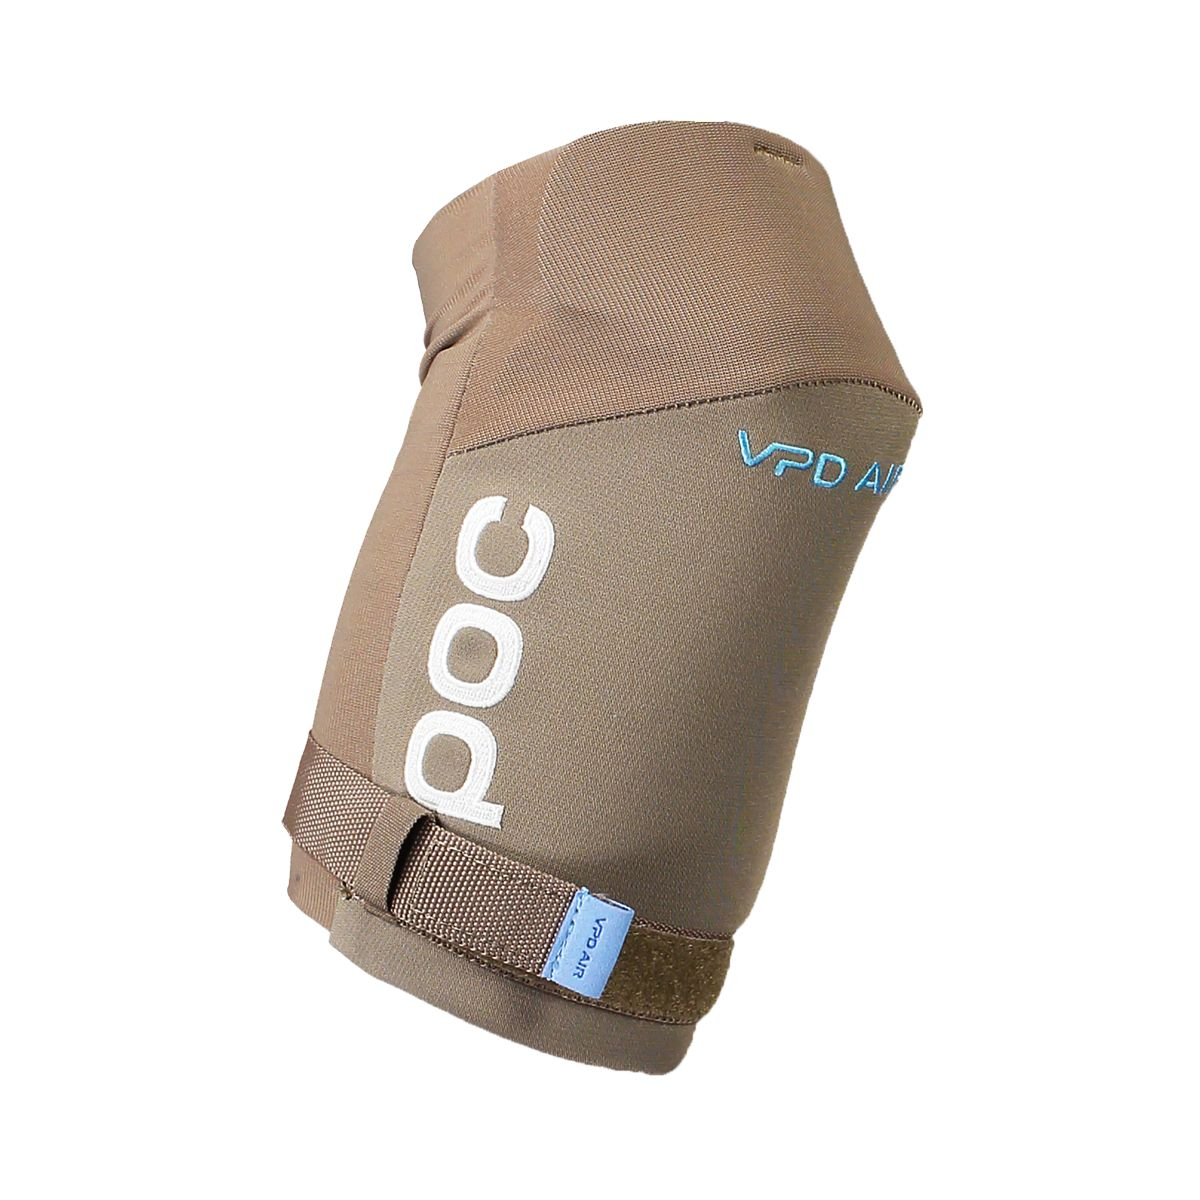 JOINT VPD AIR Elbow Pads